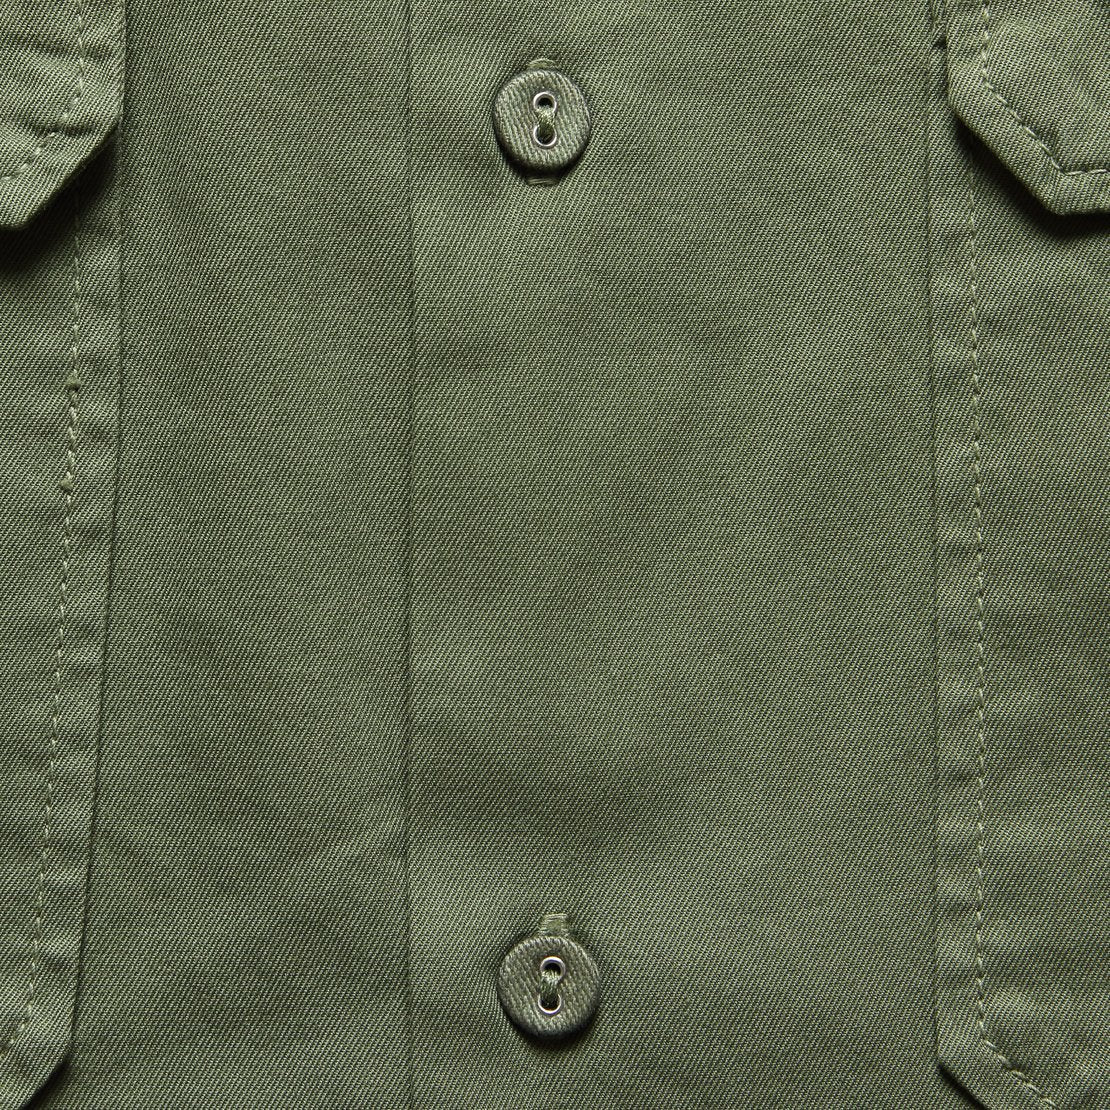 Light Twill Camp Shirt - Olive Drab